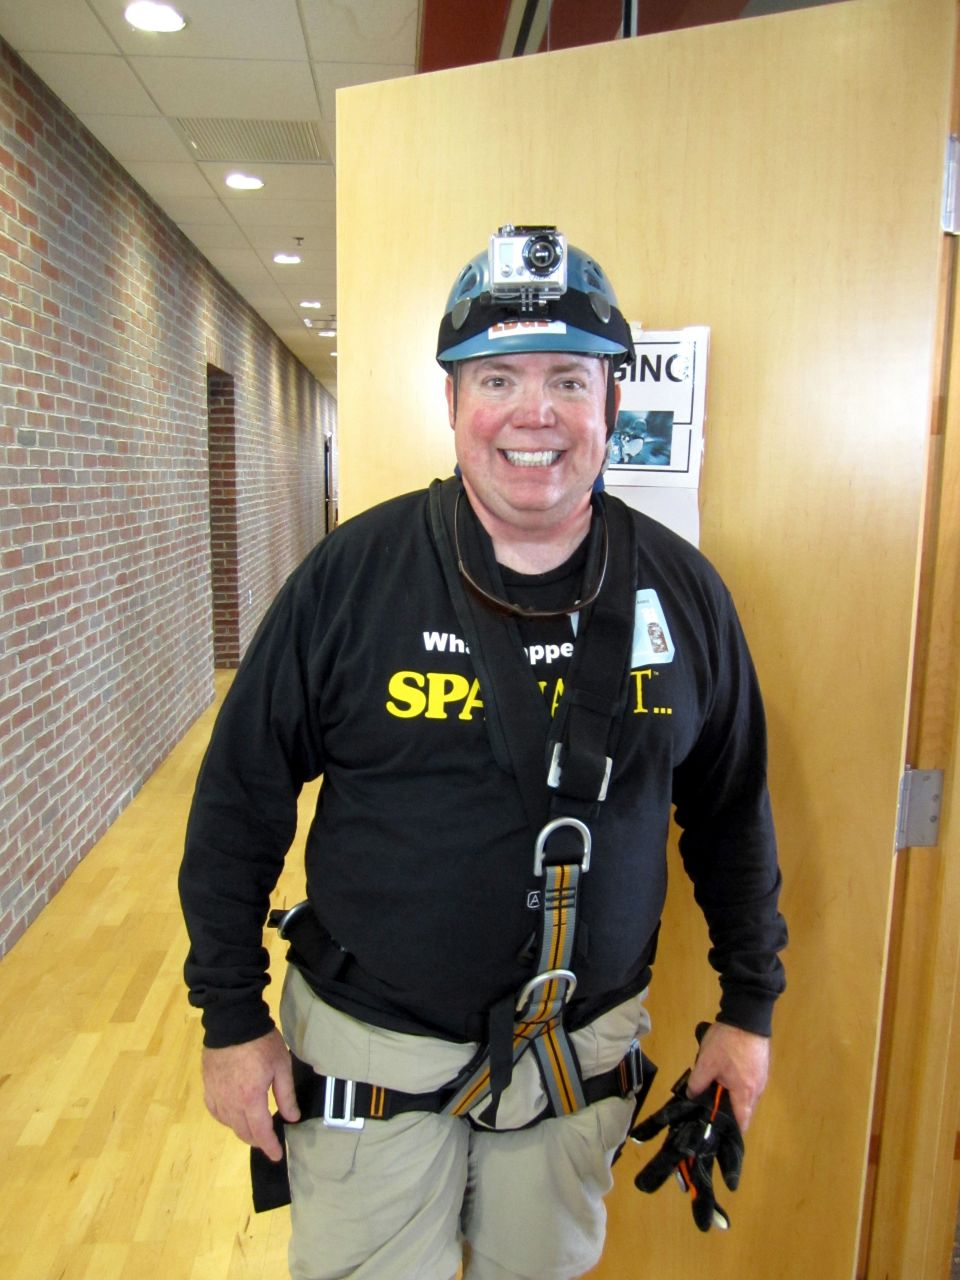 After the rappel is over. All Smiles! (Or is it relief?)